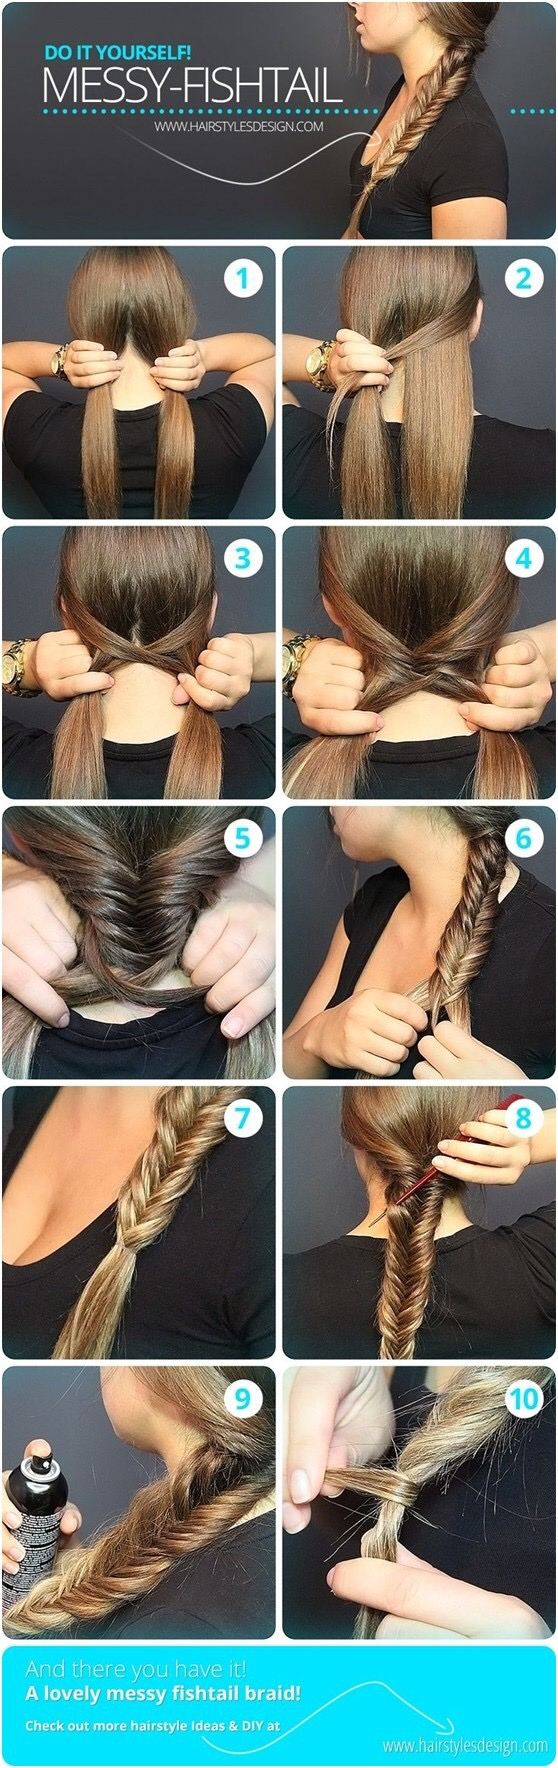 top 10 perfect hairstyles for fishing & camping | the catch